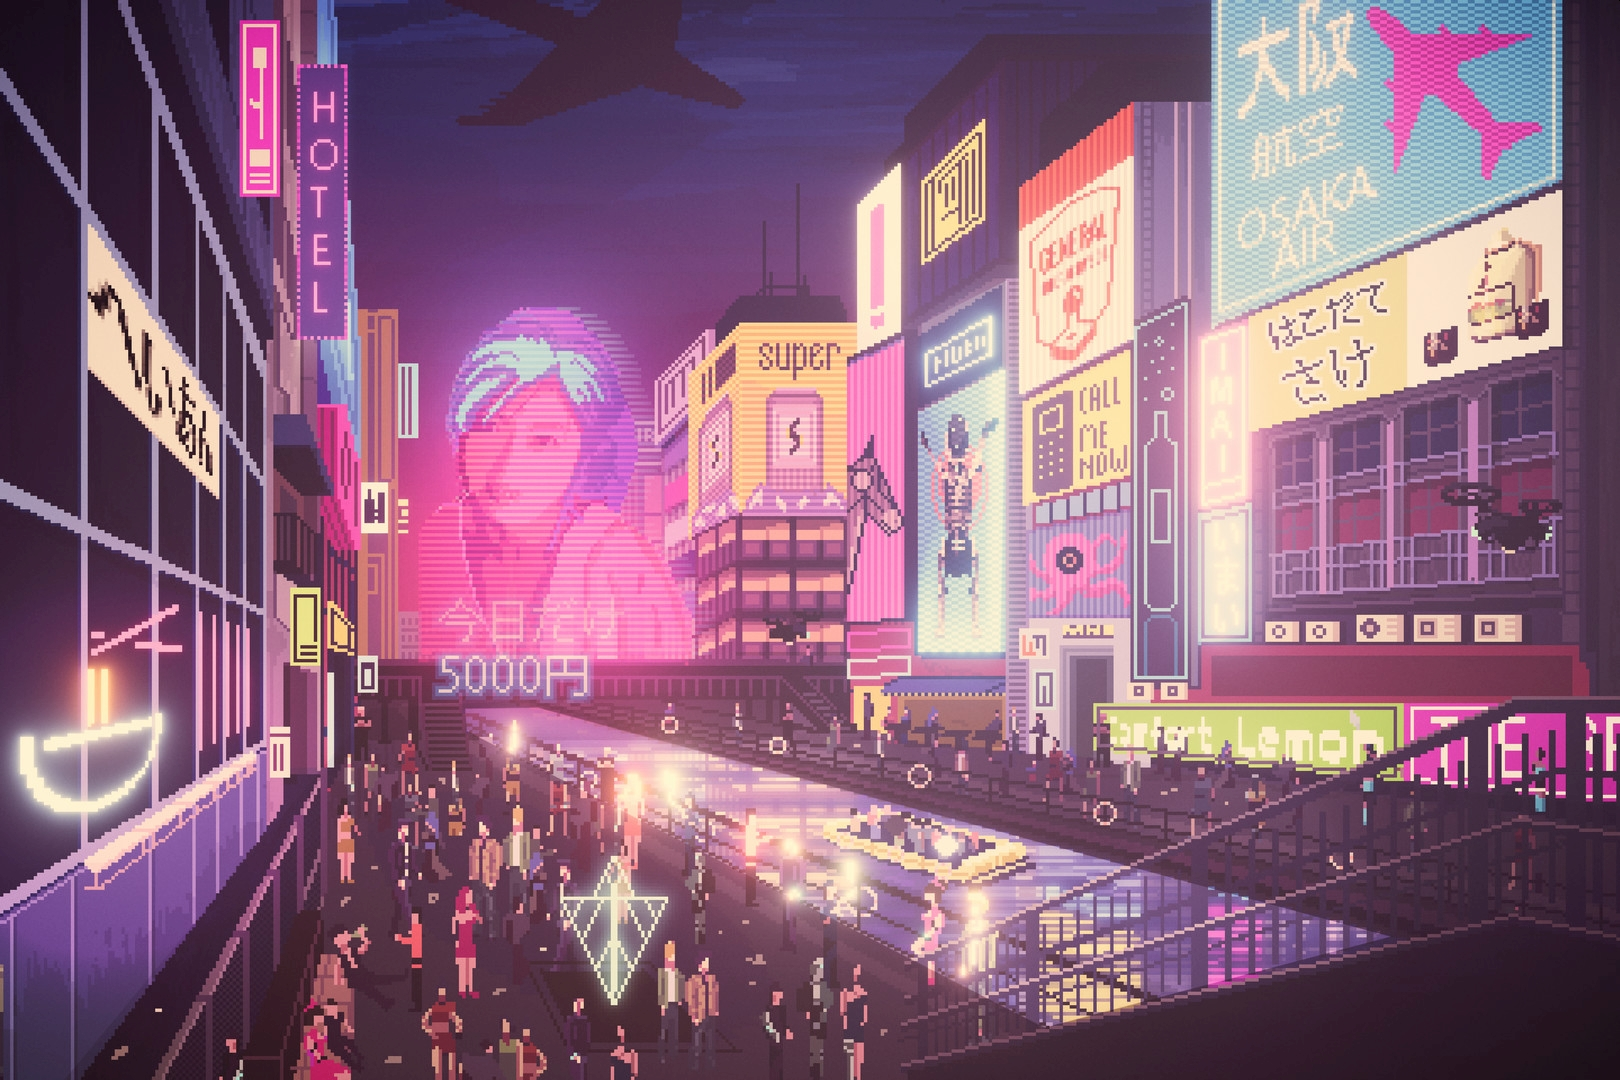 Cybernoir Adventure Chinatown Detective Agency Reaches Funding Goal And Adds Stretch Goals